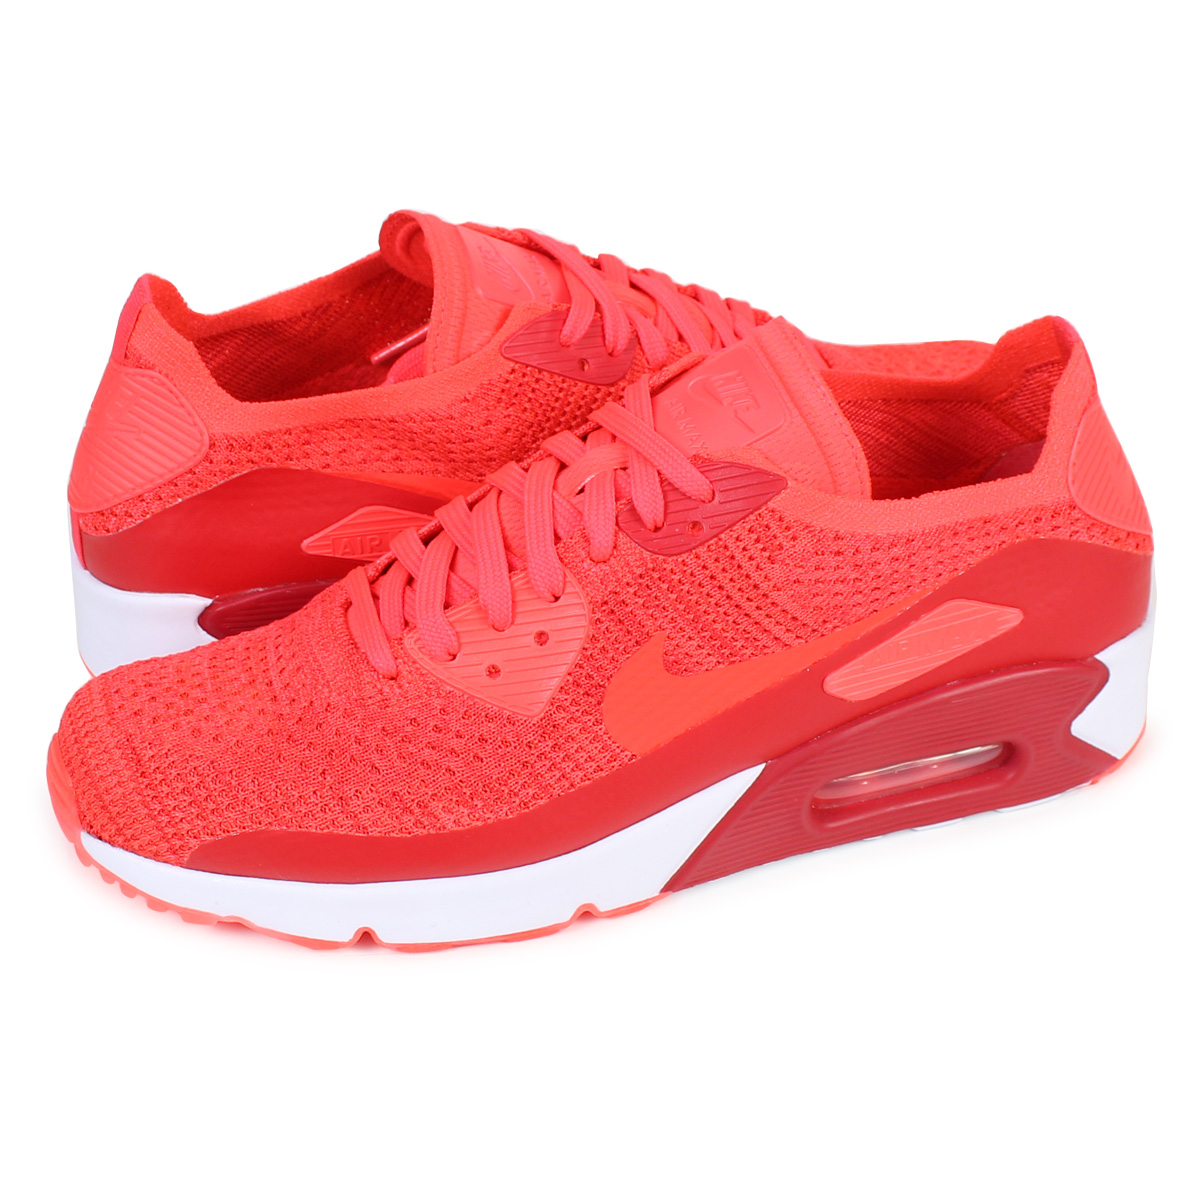 hot sale online bc28c d0876 NIKE AIR MAX 90 ULTRA 2.0 FLYNIT Kie Ney AMAX 90 fried food knit sneakers  875,943-600 men s shoes red  load planned Shinnyu load in reservation  product ...